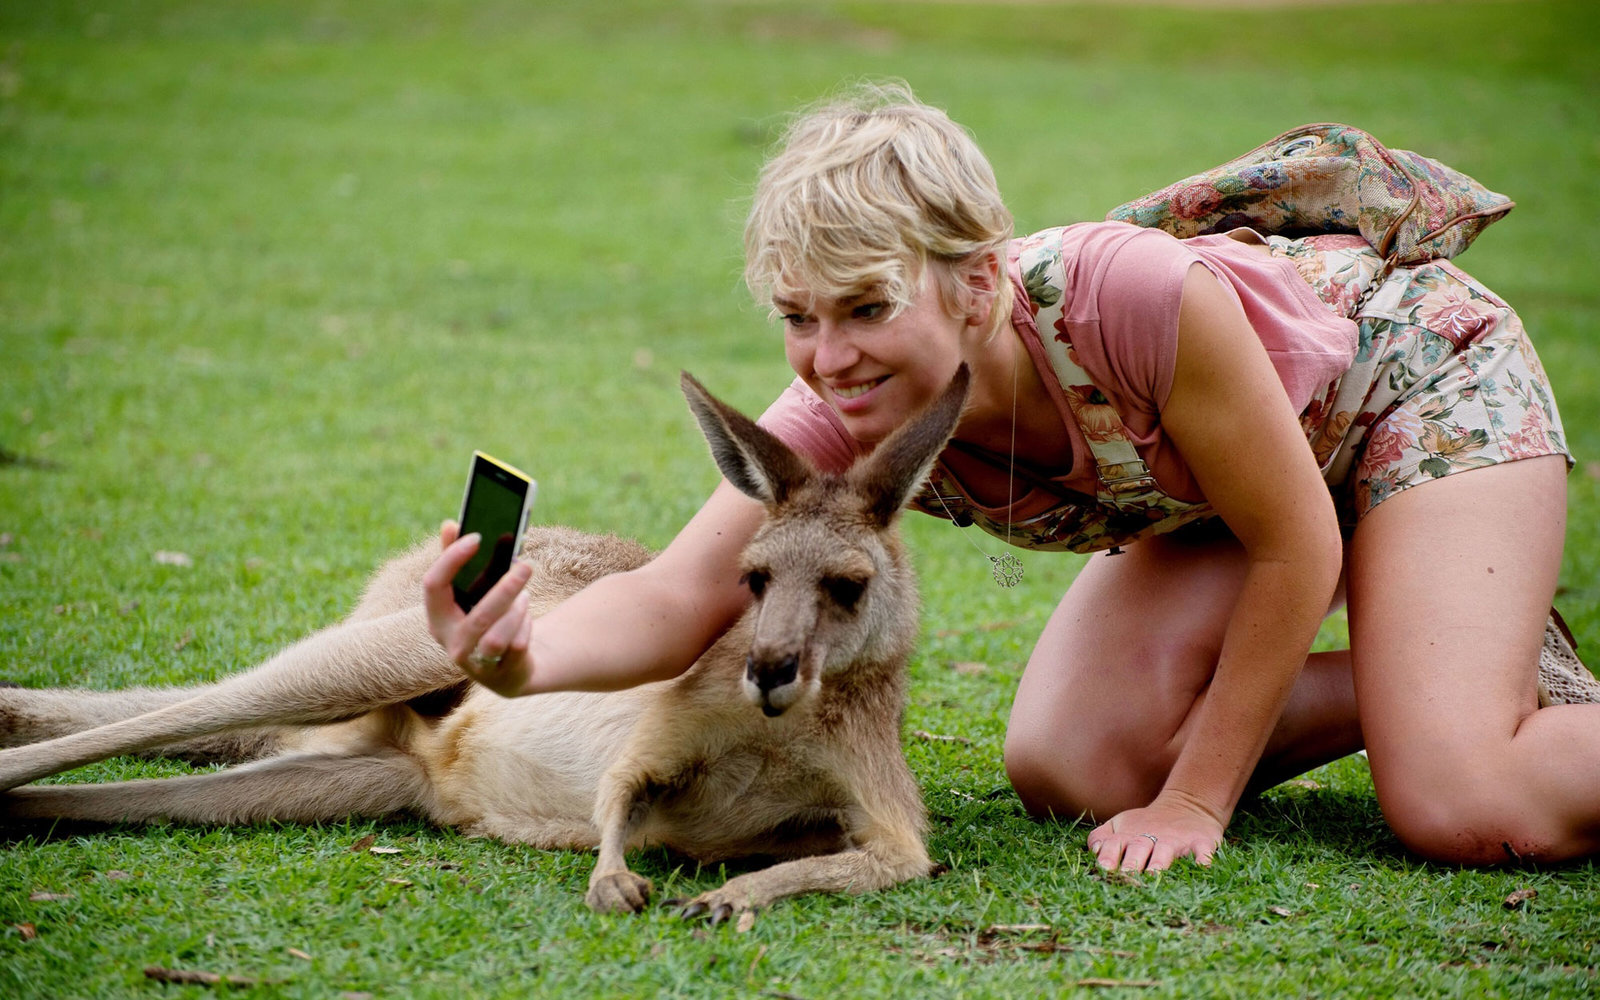 Selfie with Kangaroo